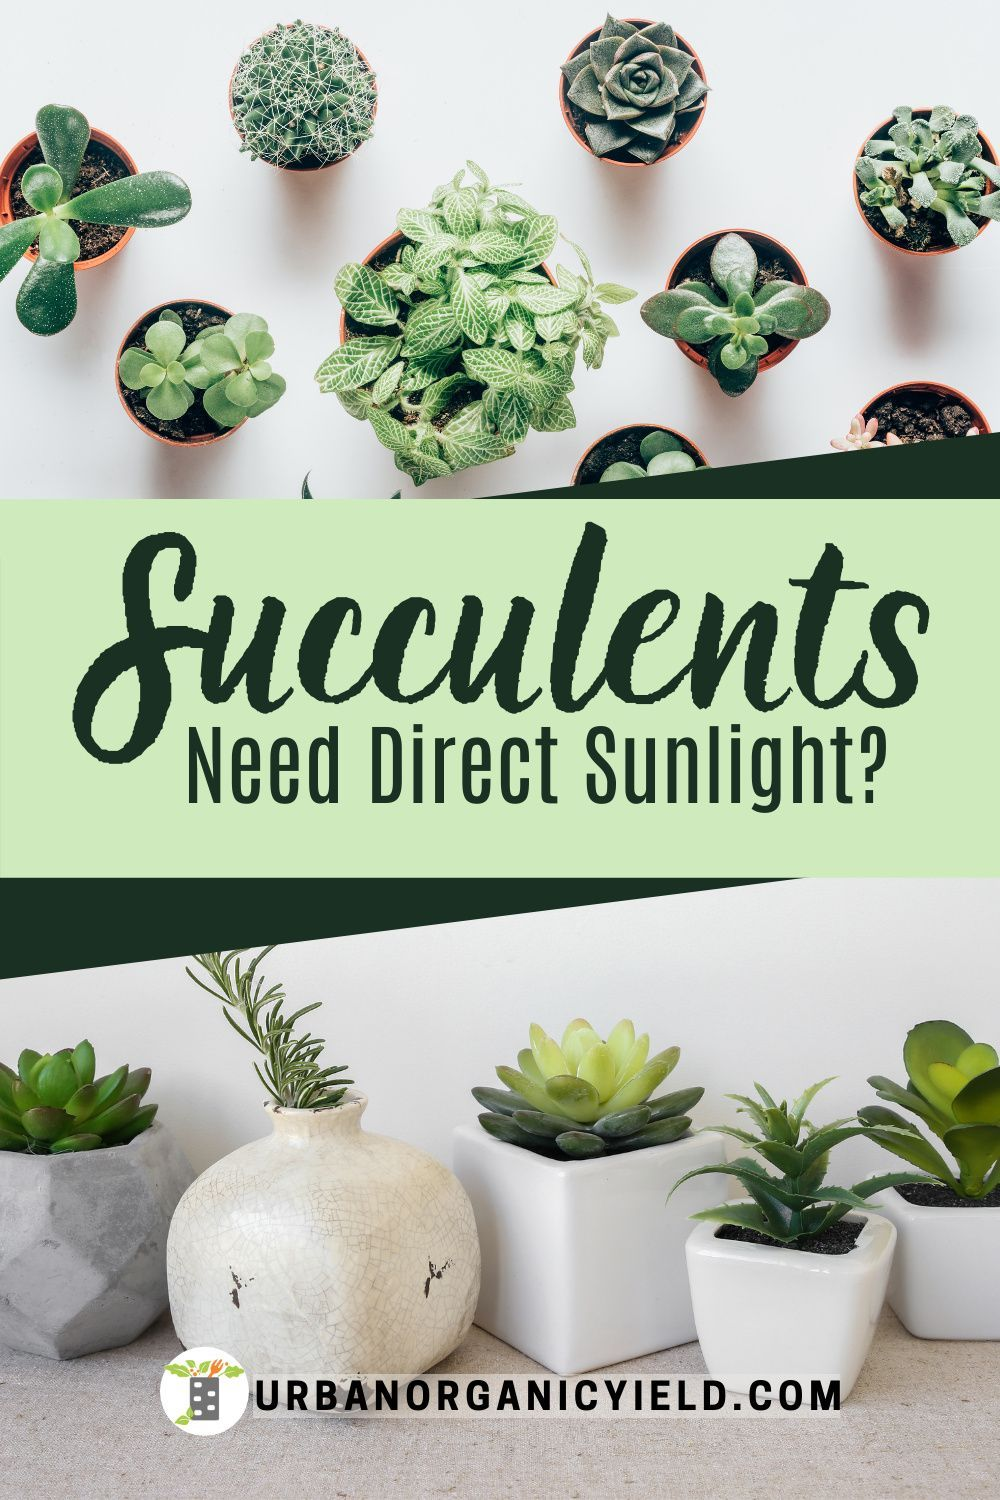 Do Succulents Need Direct Sunlight? in 2020 How to water